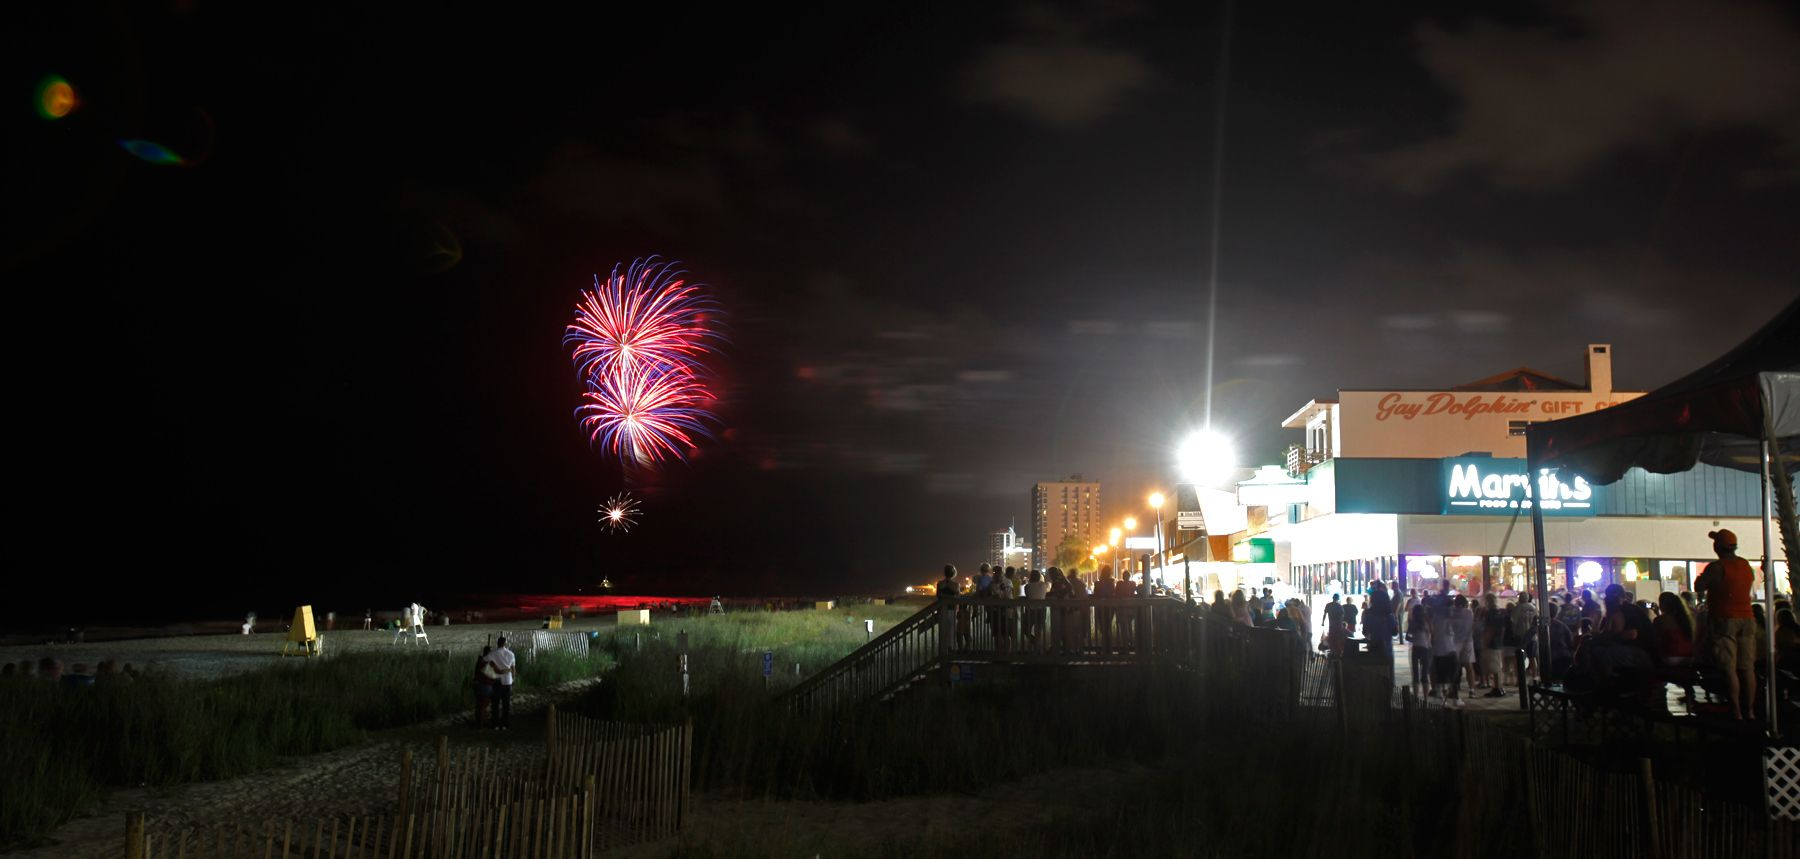 Fireworks are just part of the landscape Wednesday evening looking South from Plyler Park during the weekly fireworks display during the summer series Hot Summer Nights in Myrtle Beach.